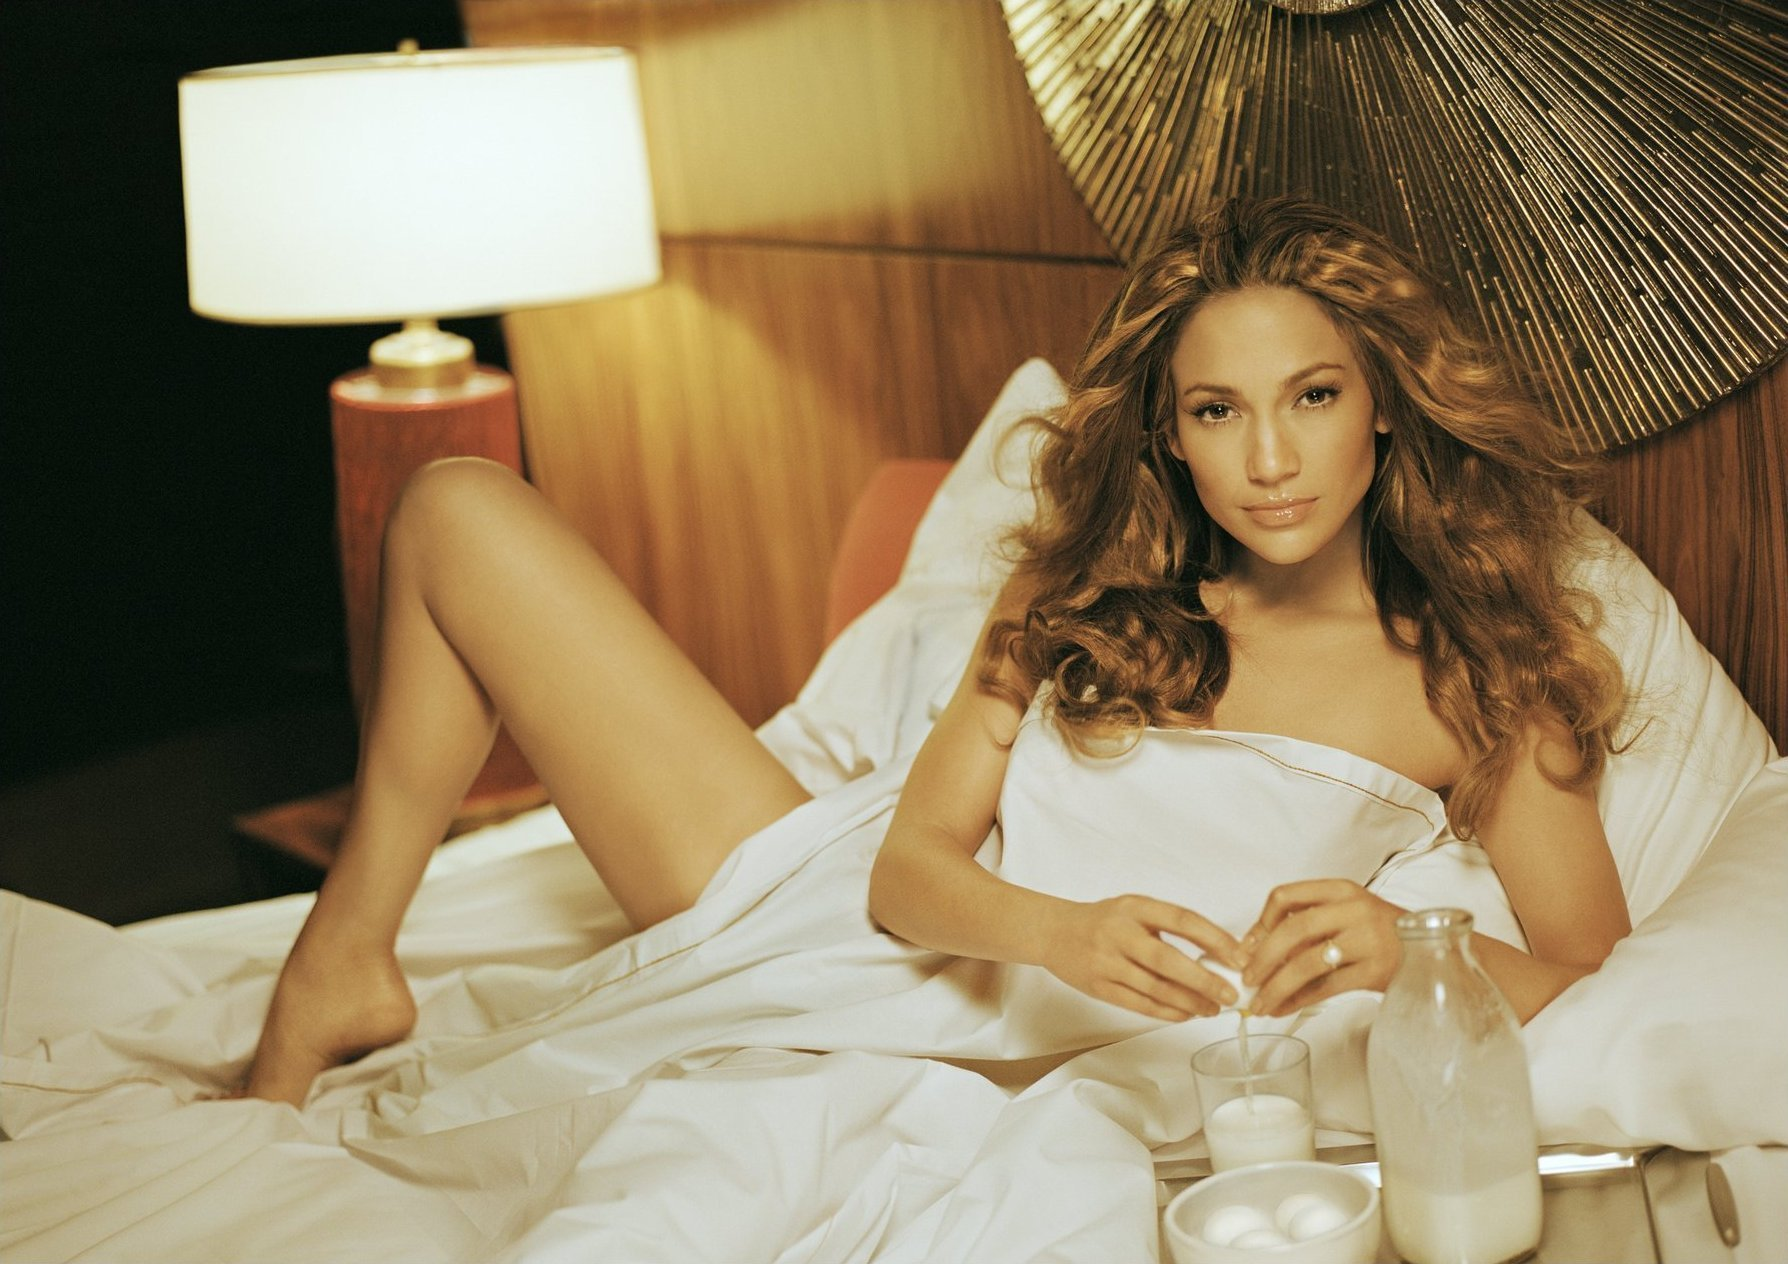 Women Jennifer lopez girl HD Wallpaper